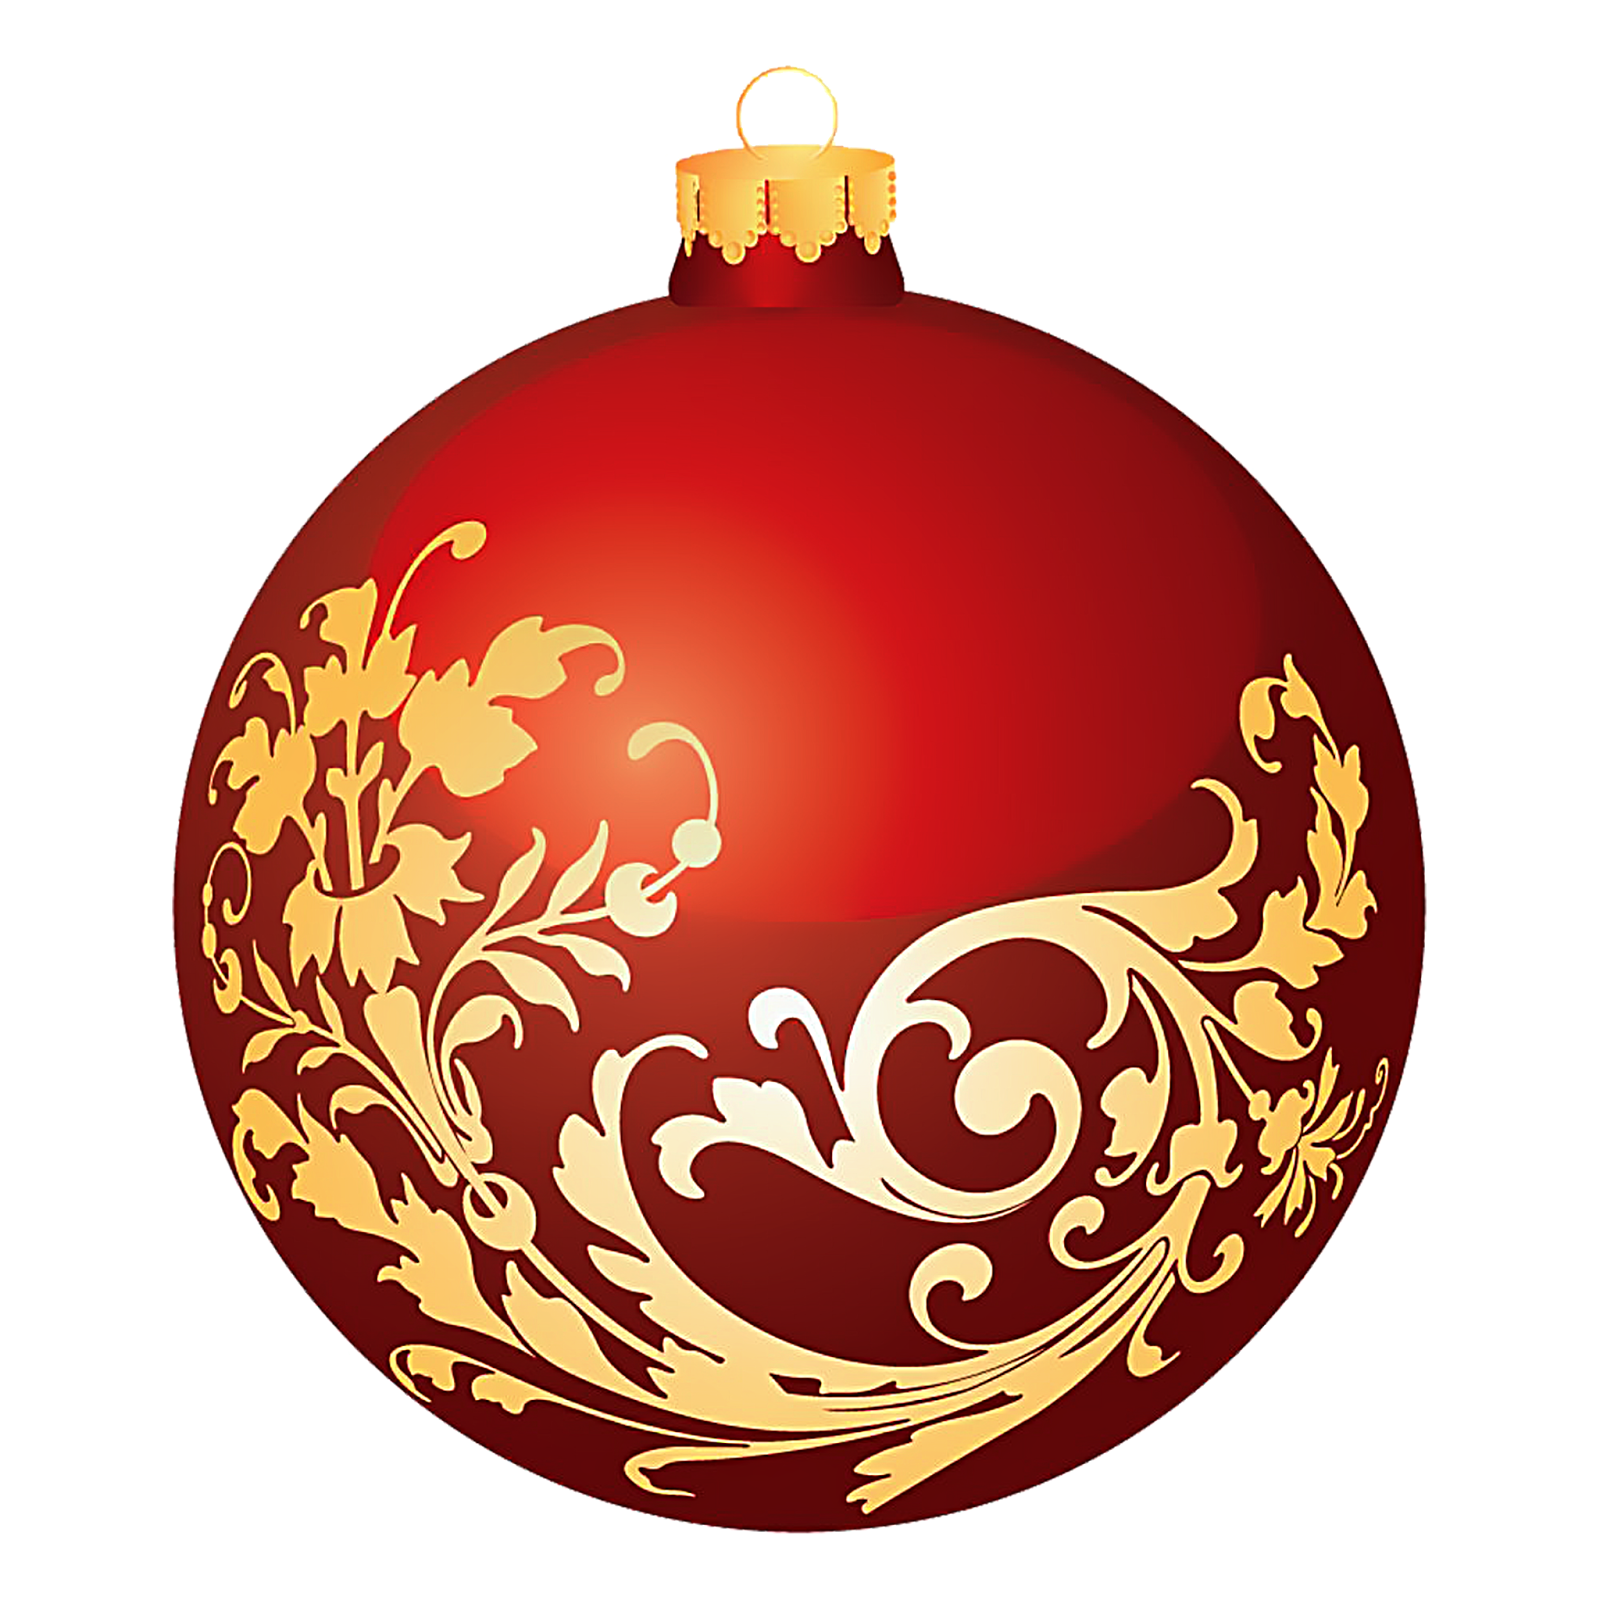 Rv clipart merry christmas. Free beautiful cliparts download